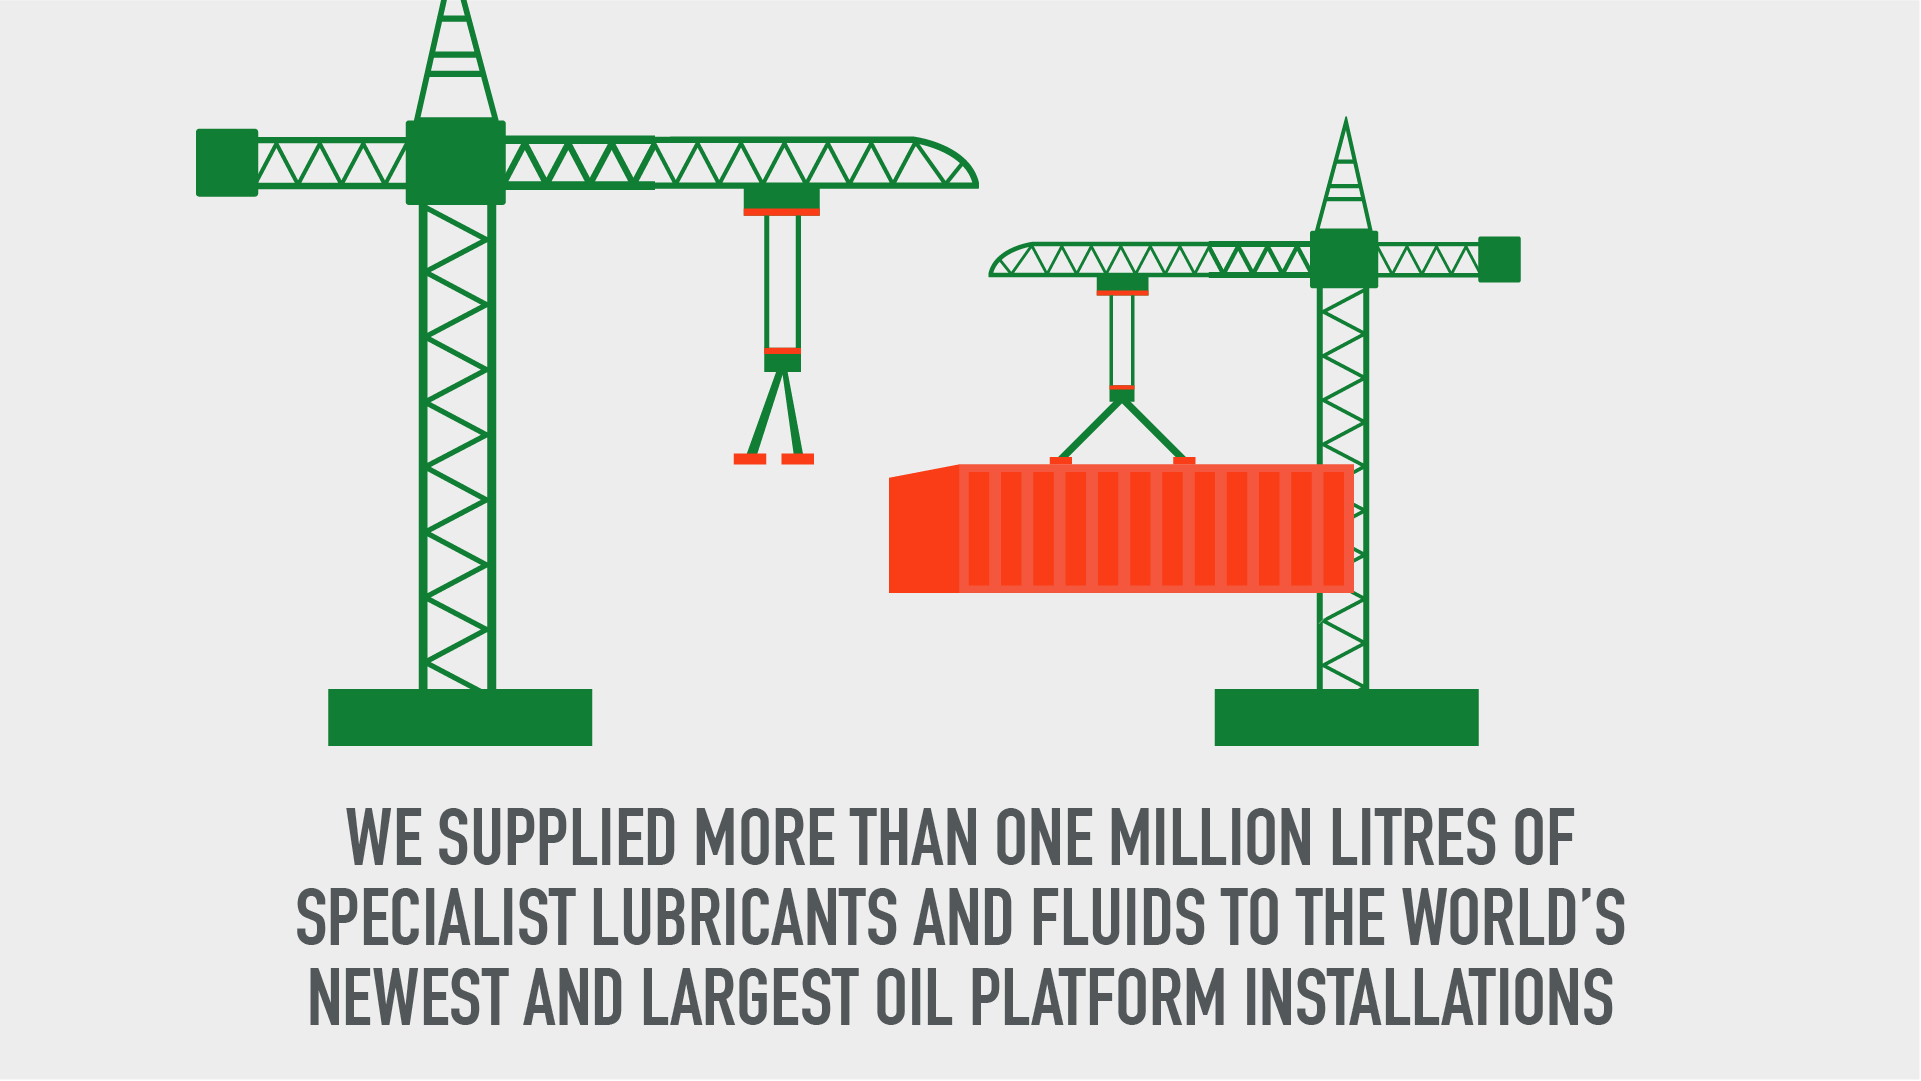 We supplied more than one million litres of specialist lubricants and fluids to the world's newest and largest oil platform installations.jpg